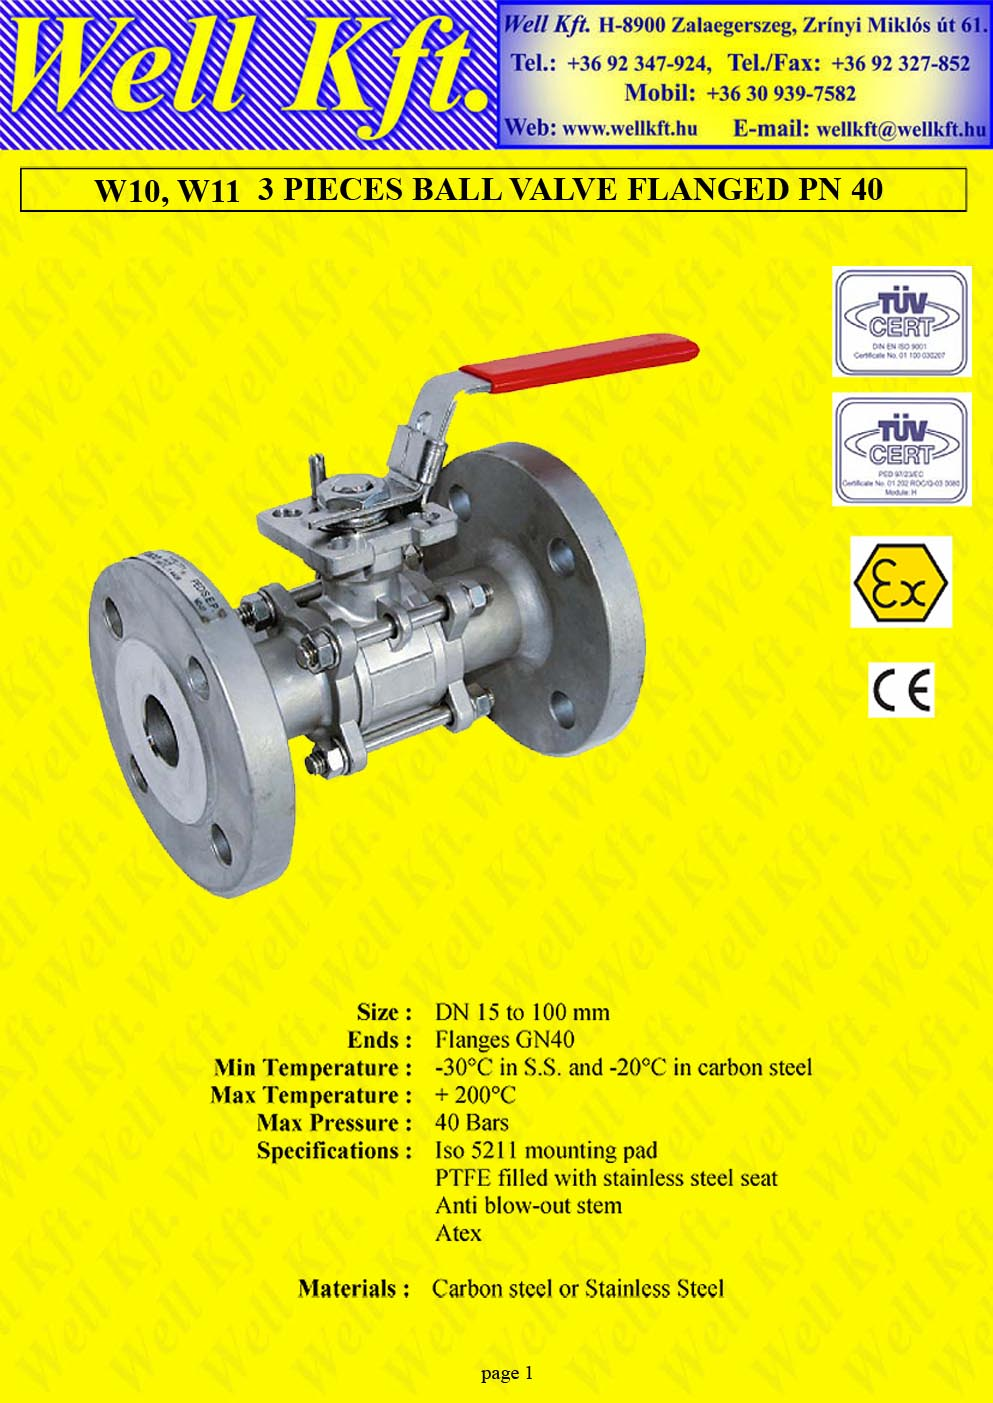 Ball valve 3 pieces stainless steel, carbon steel ISO pad flanged, PN 40 (1.)